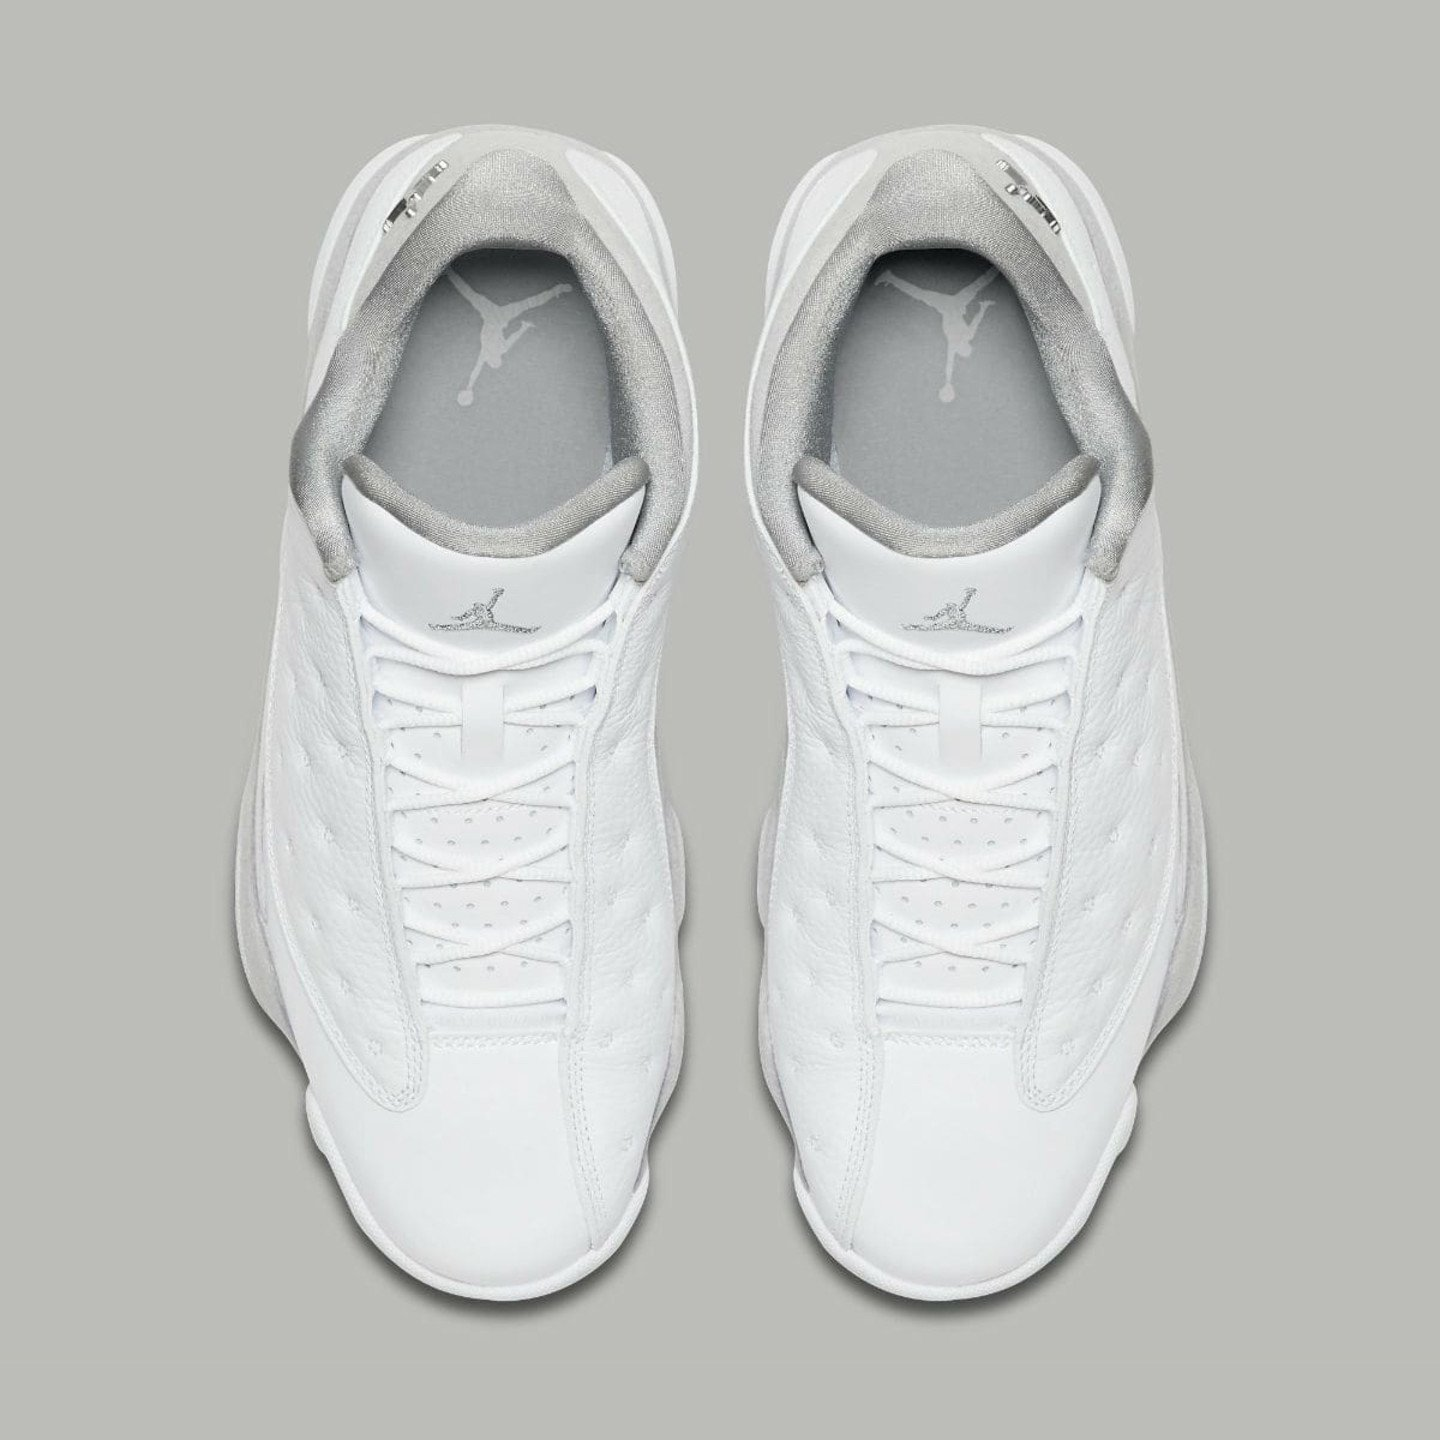 Jordan Air Jordan 13 Retro Low 'Pure Money' White / Metallic Silver 310810-100-47.5